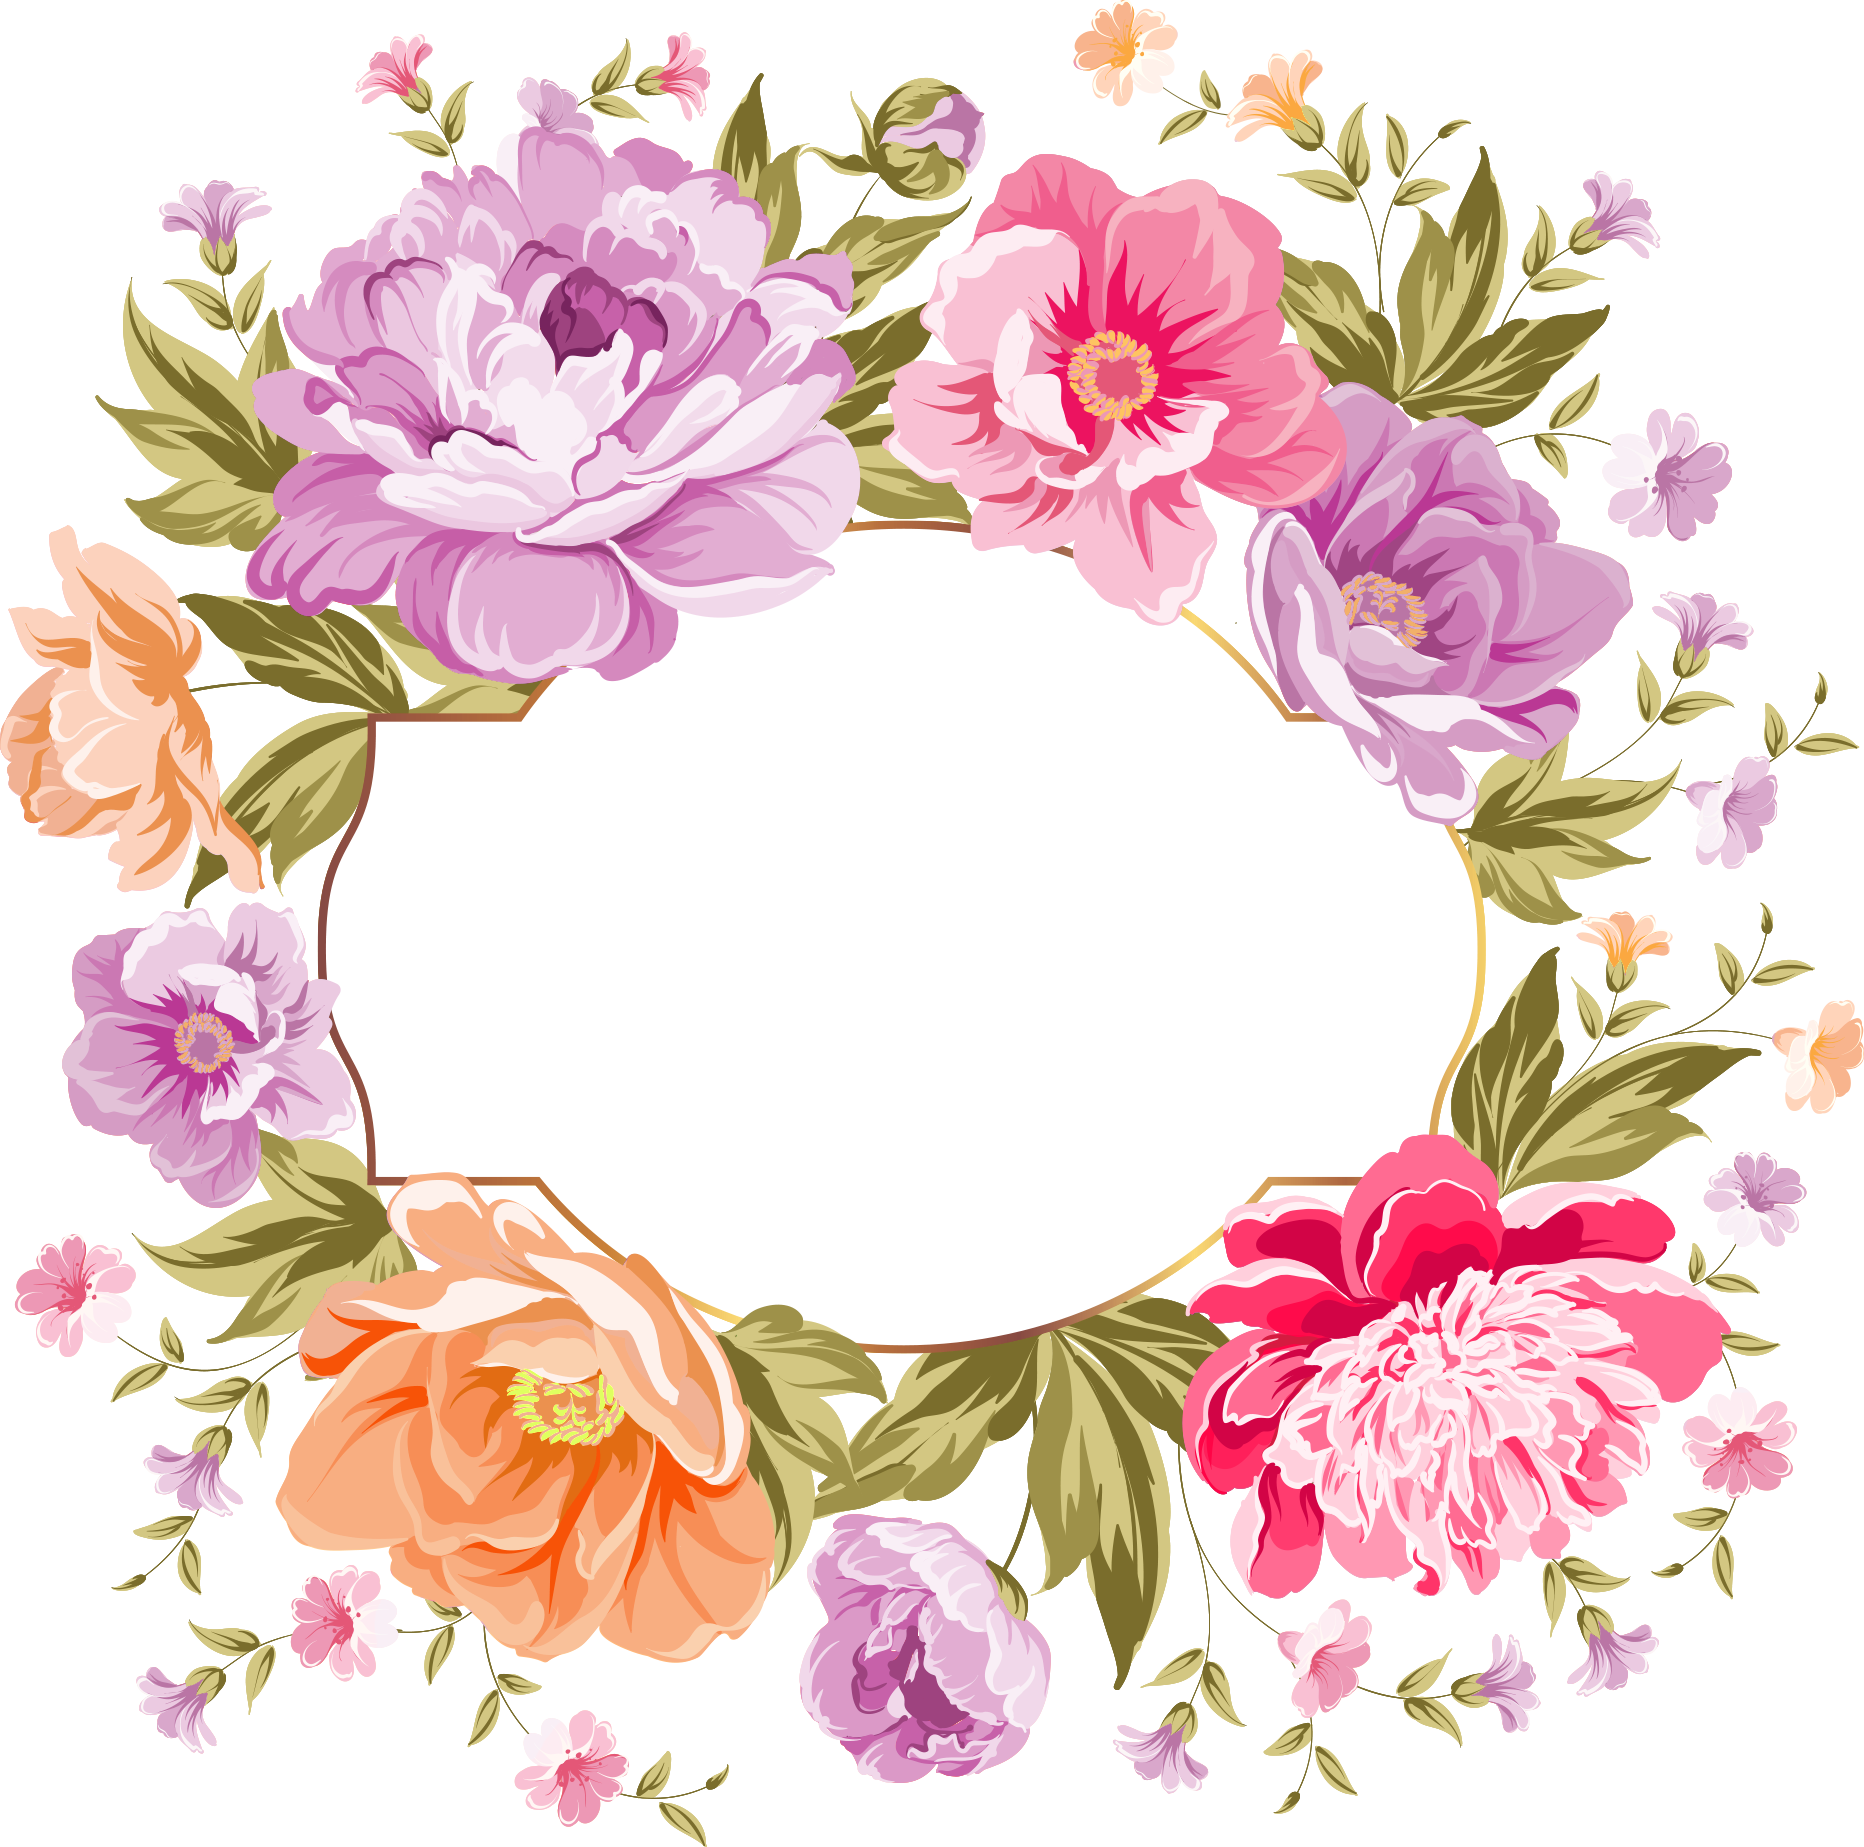 Watercolor flowers border png. Http d top net